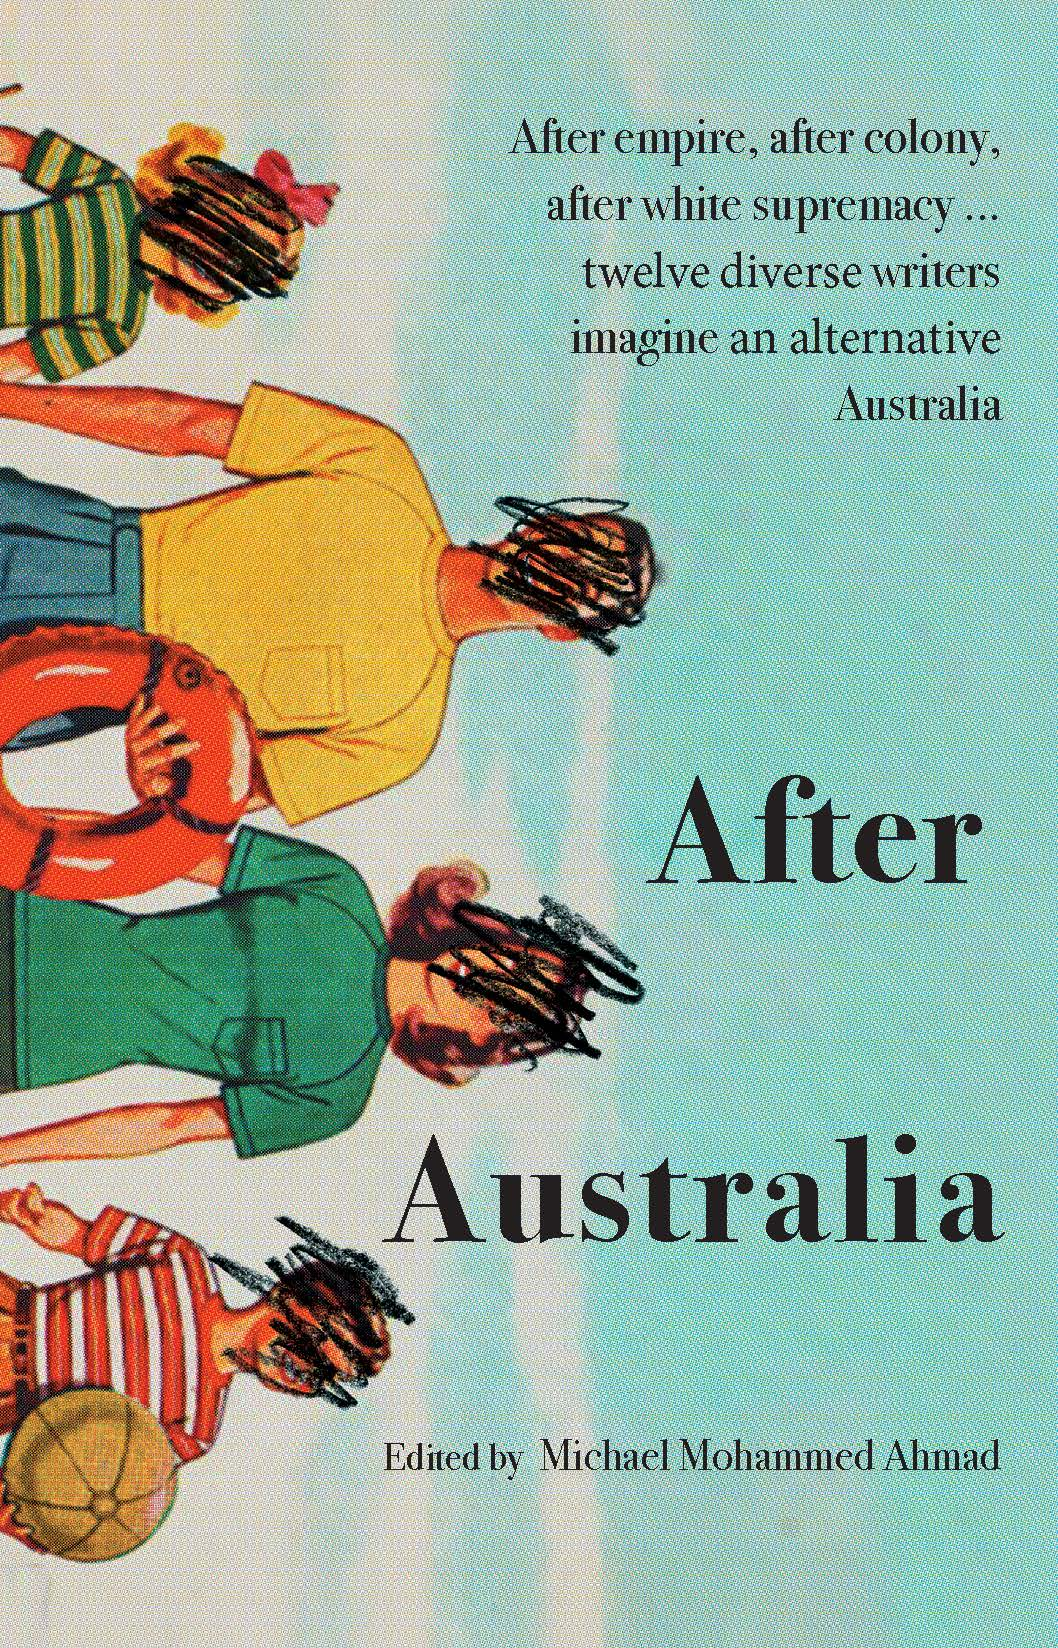 Cover image of the anthology 'After Australia', featuring a story by Roanna Gonsalves